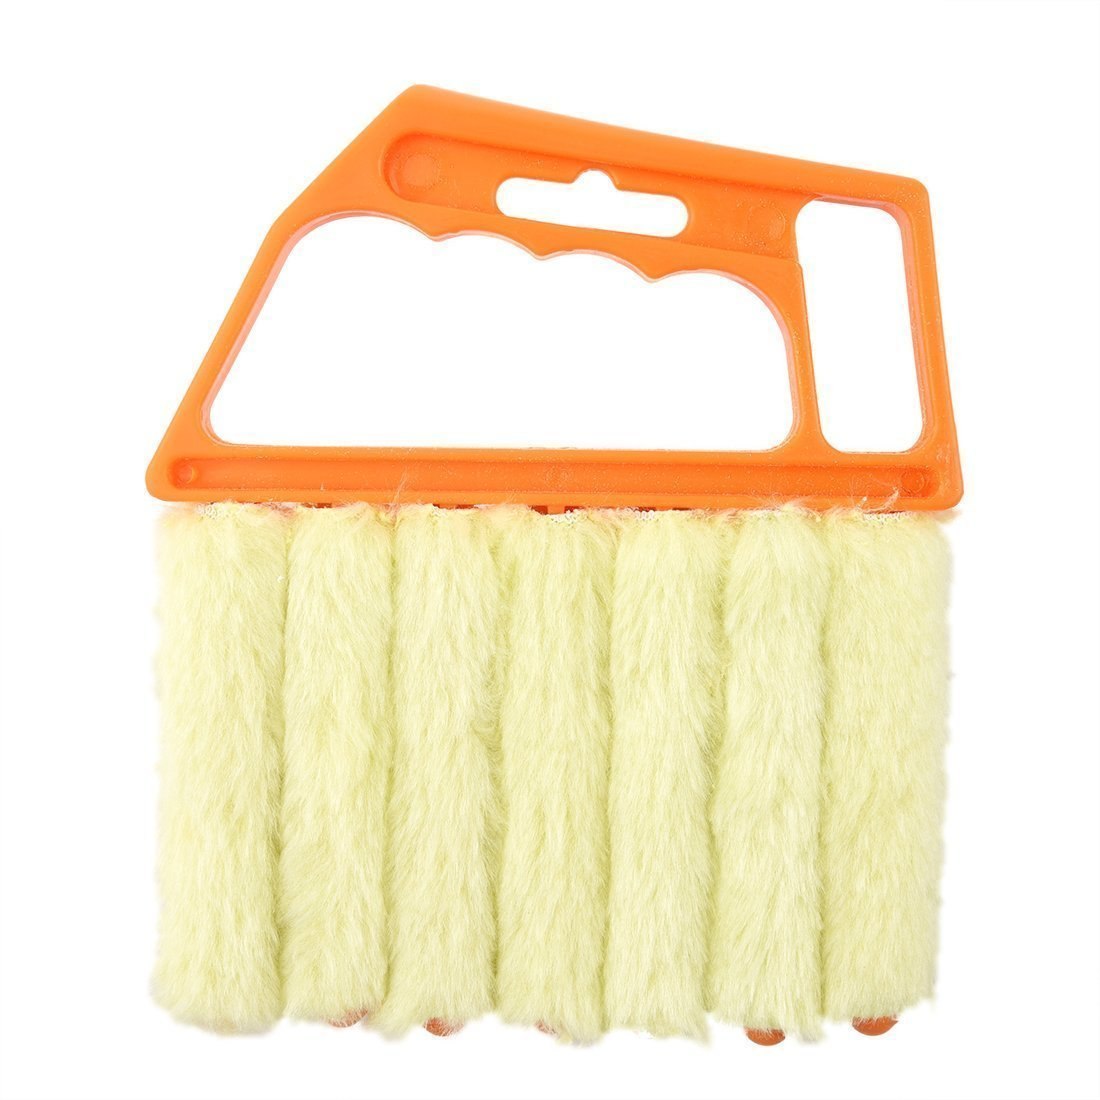 NEO+ 7 Brush Venetian Blind Clean Dust Cleaner Slats Mini Duster Washable Easy